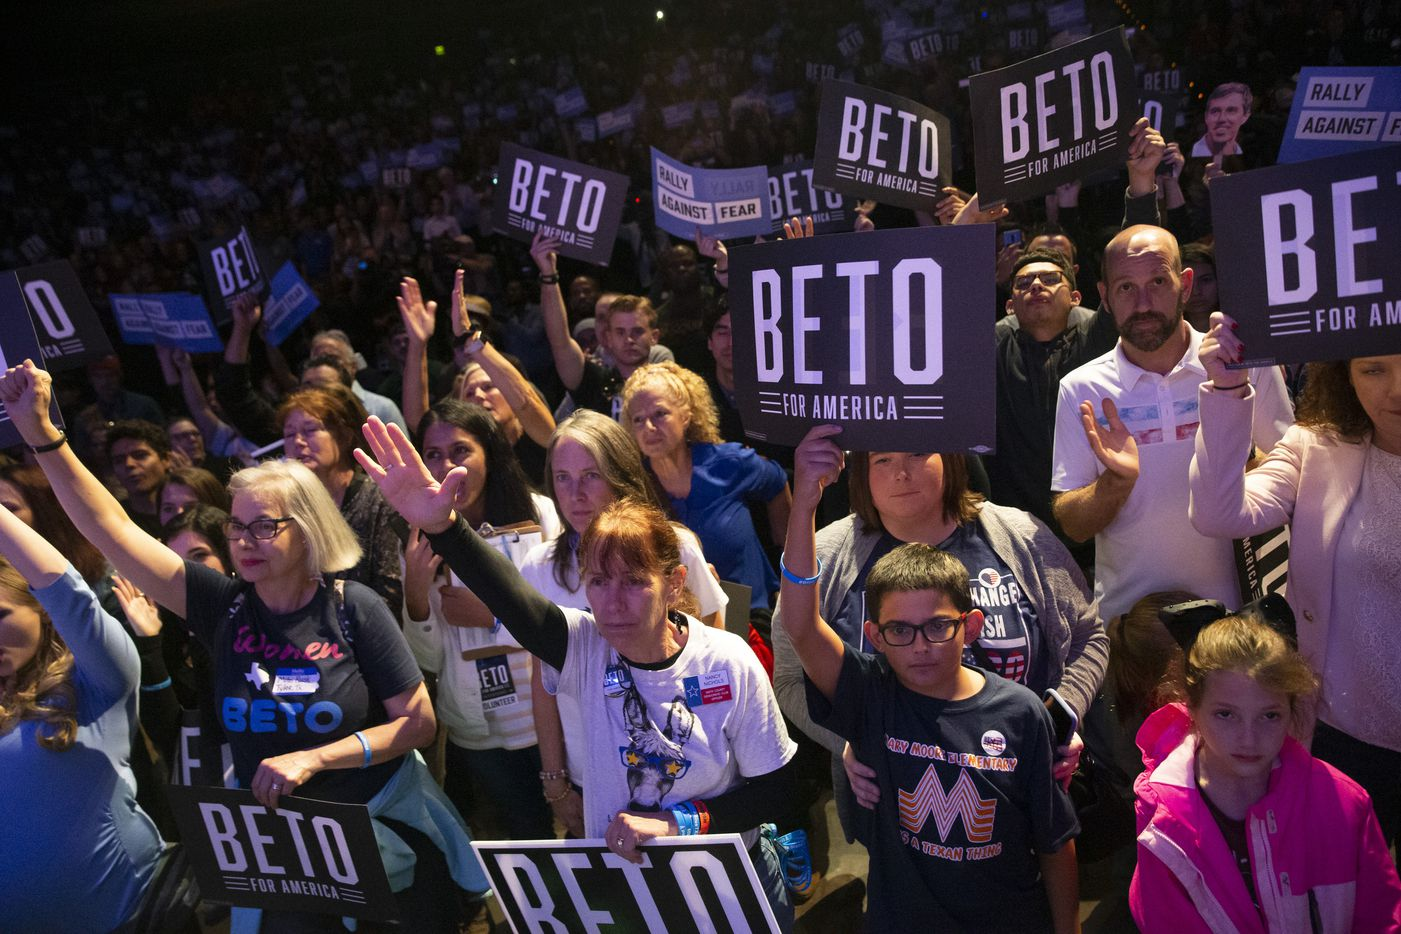 Supporters cheer as they prepare for Democratic presidential candidate and former Texas Rep. Beto O'Rourke to take the stage at the Rally Against Fear event hosted by O'Rourke's campaign in the Theatre at Grand Prairie on Thursday, Oct. 17, 2019, in Grand Prairie, Texas. O'Rourke hosted the event in response to President Donald Trump's rally in downtown Dallas at the same time.